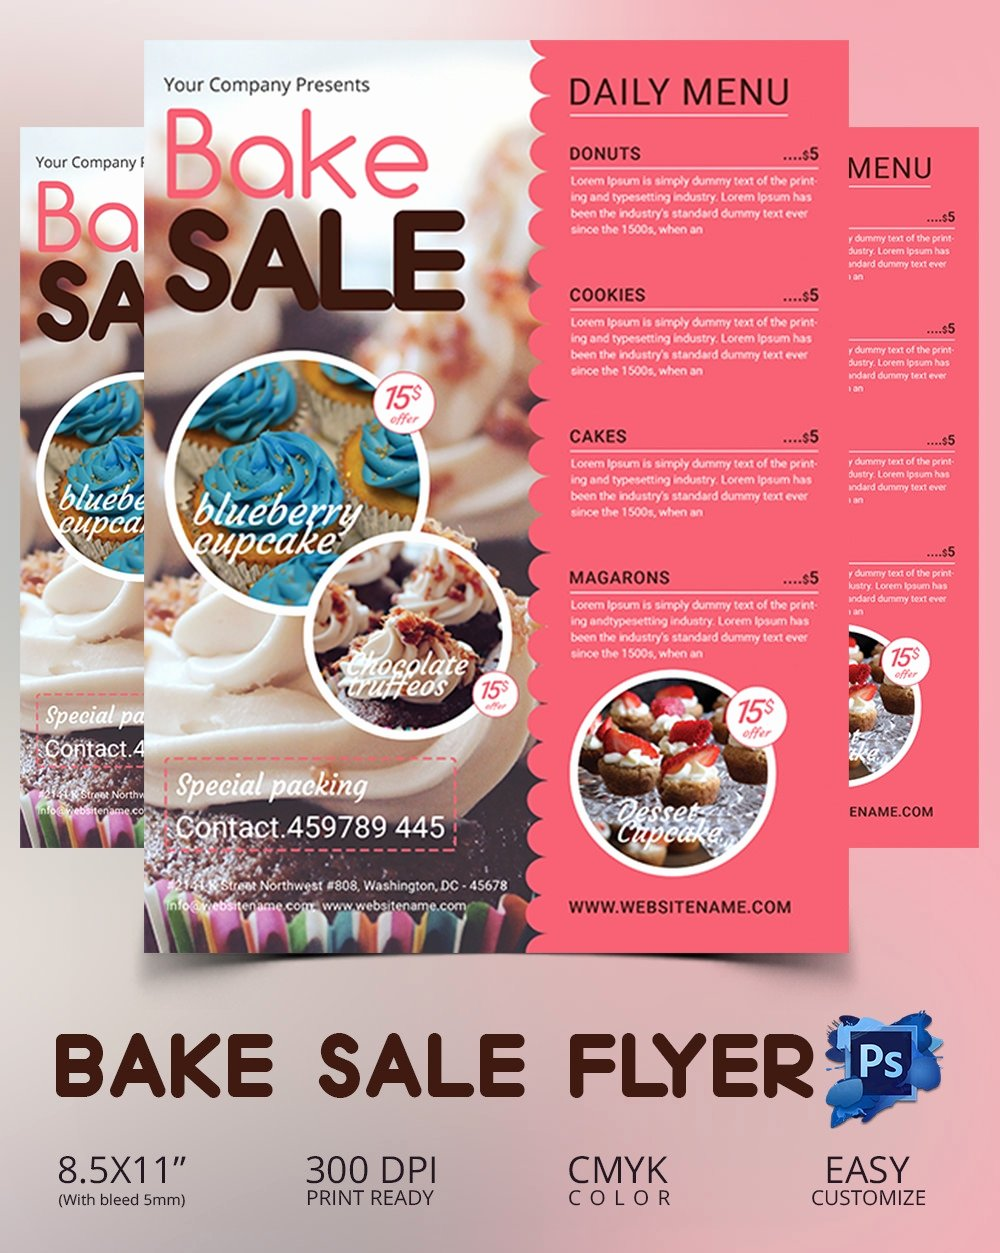 Bake Sale Flyer Templates Free Best Of Bake Sale Flyer Template 34 Free Psd Indesign Ai